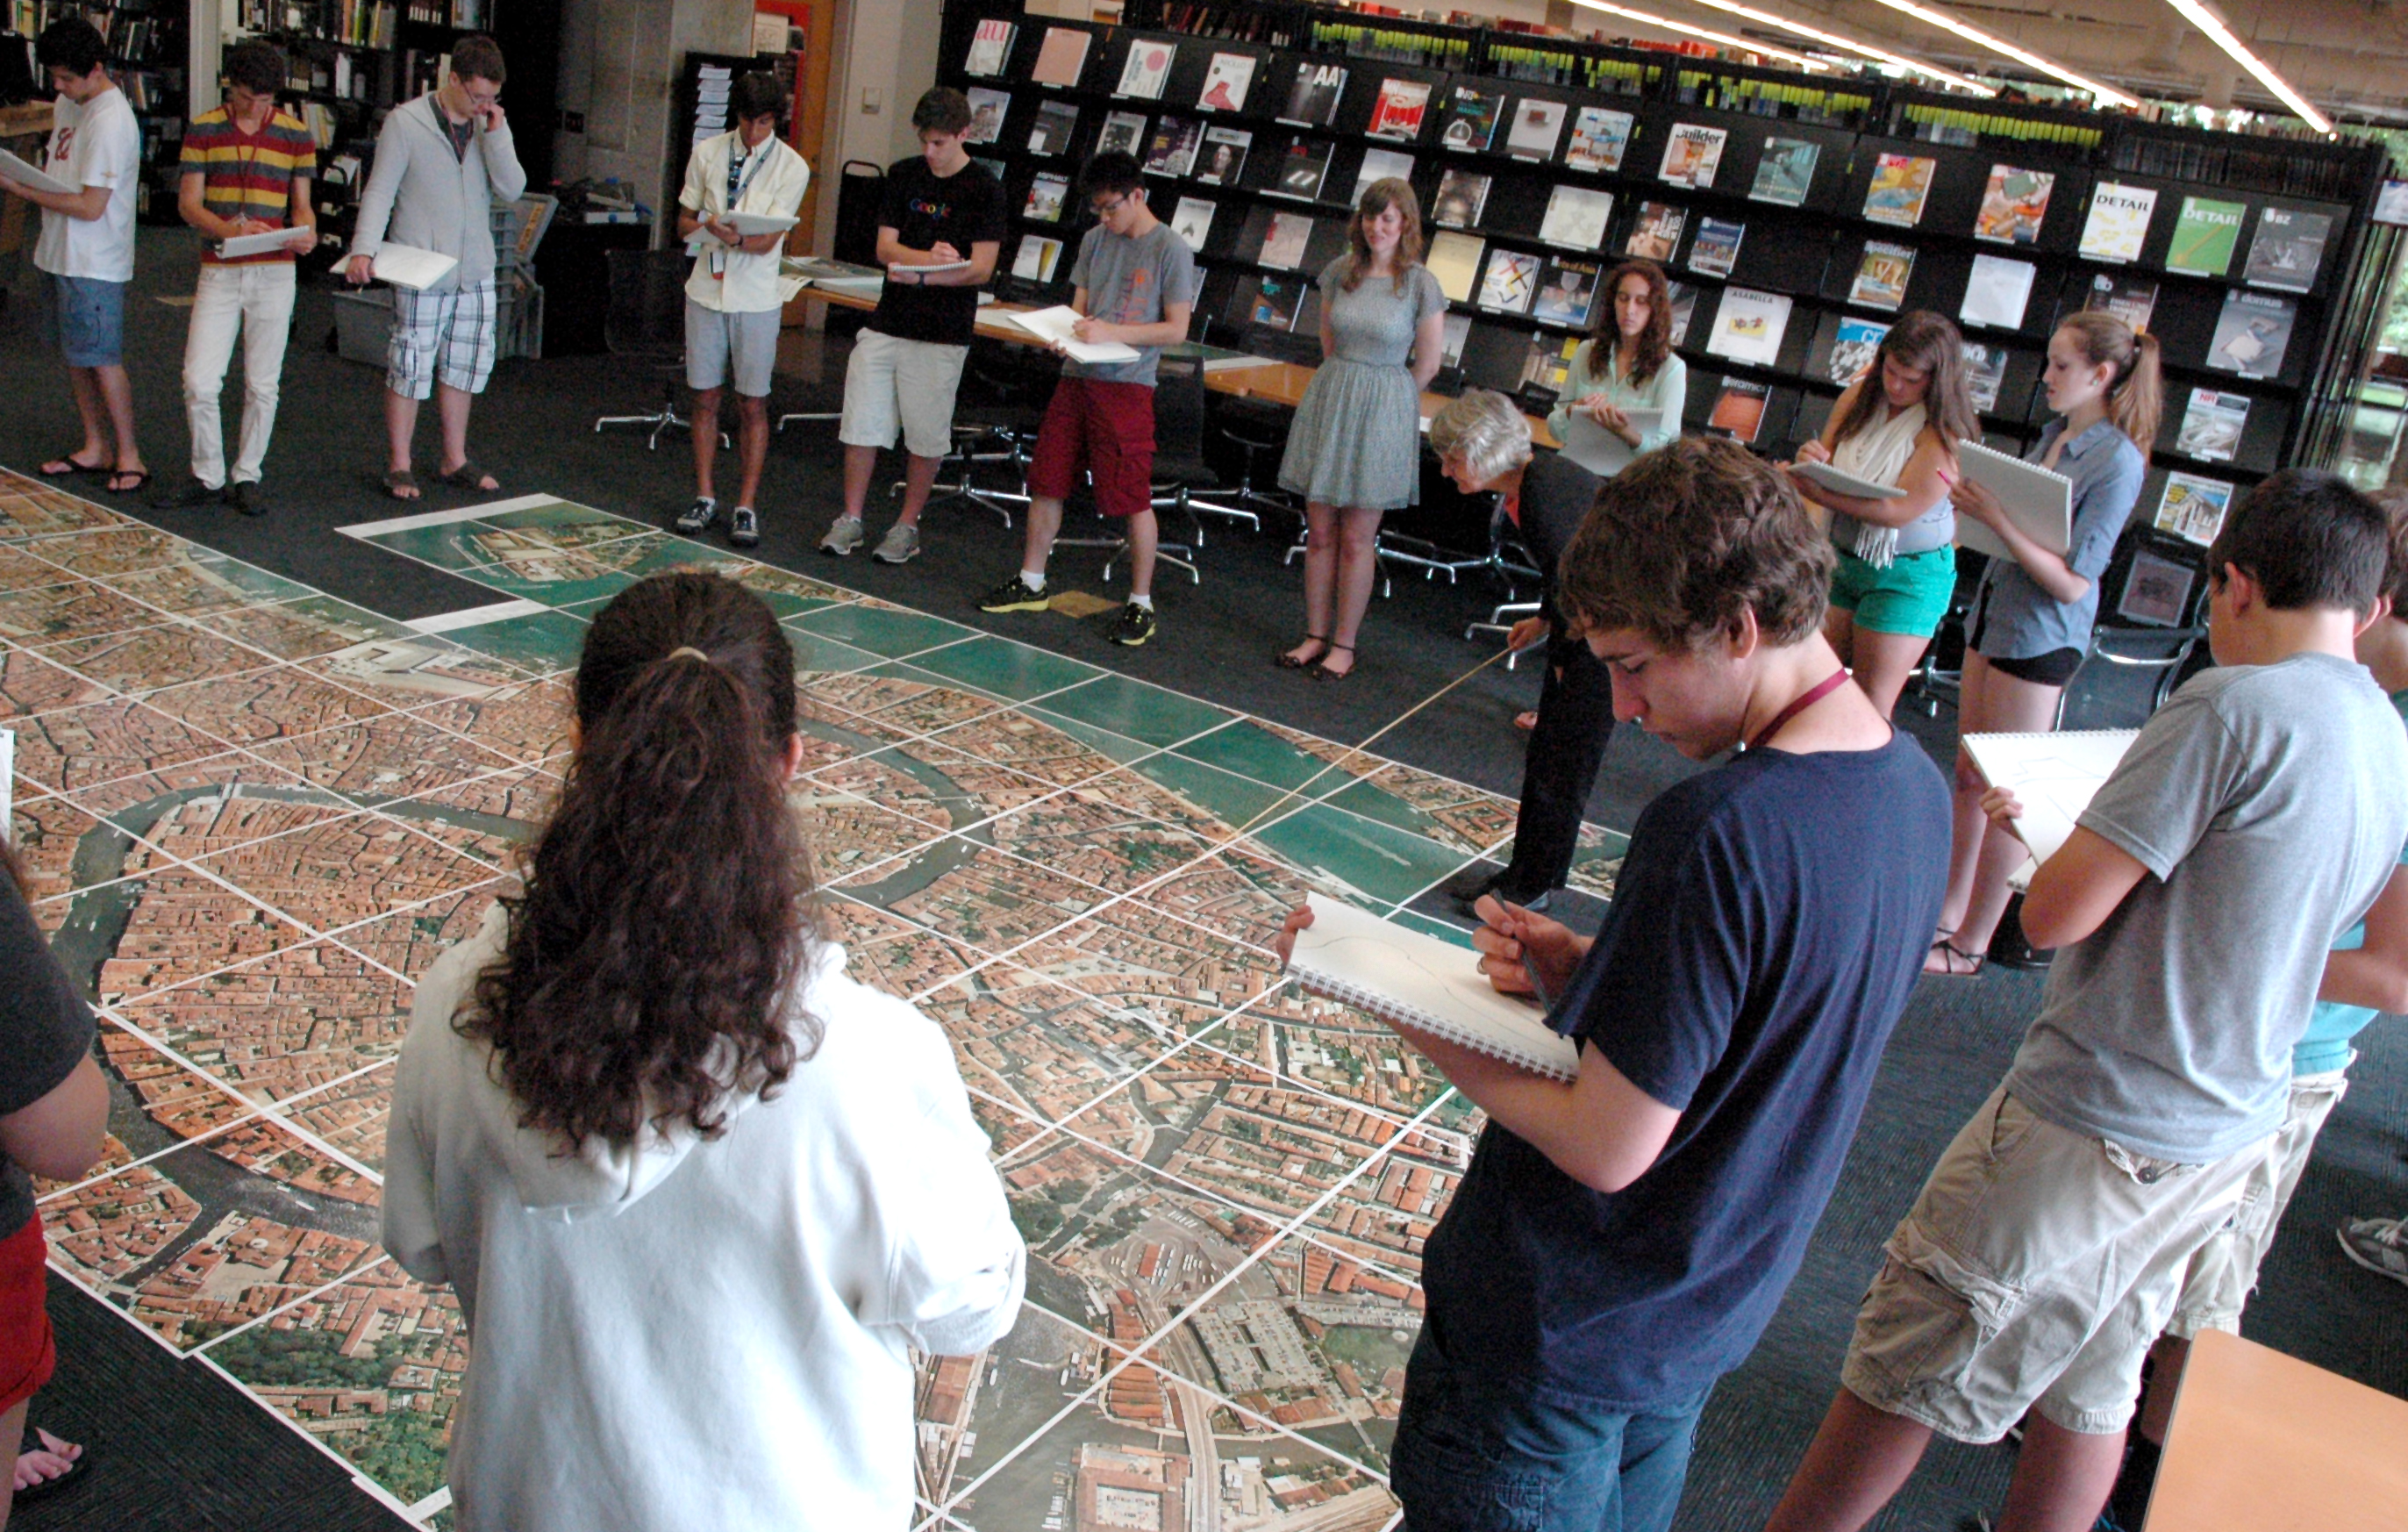 Students with sketchbooks gather around a large map on the floor.